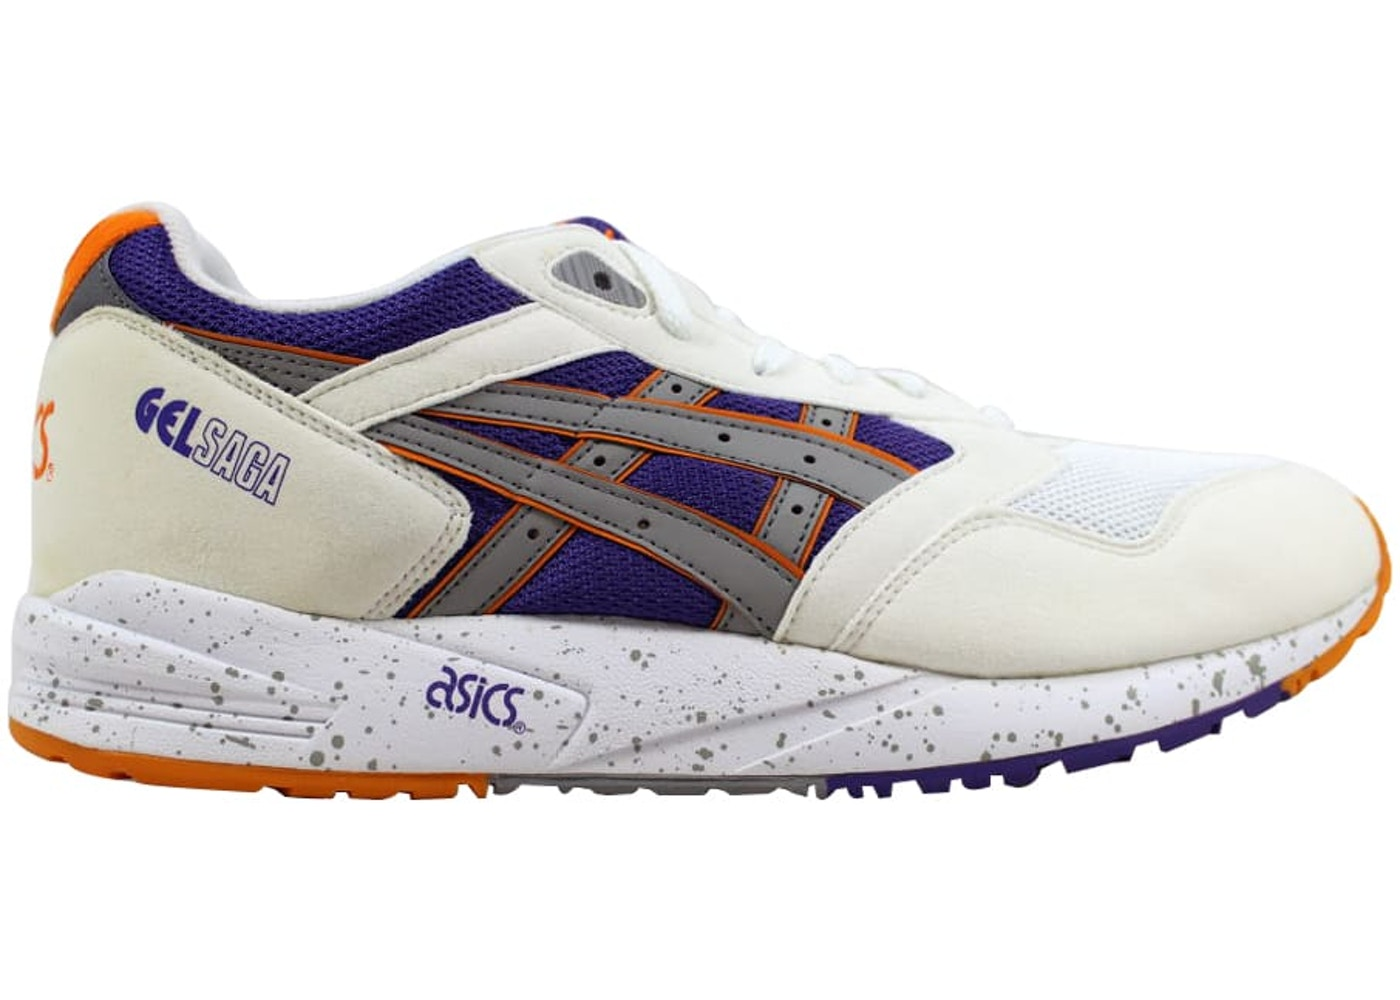 huge discount 41957 2f02e Asics Size 8 Shoes - Featured